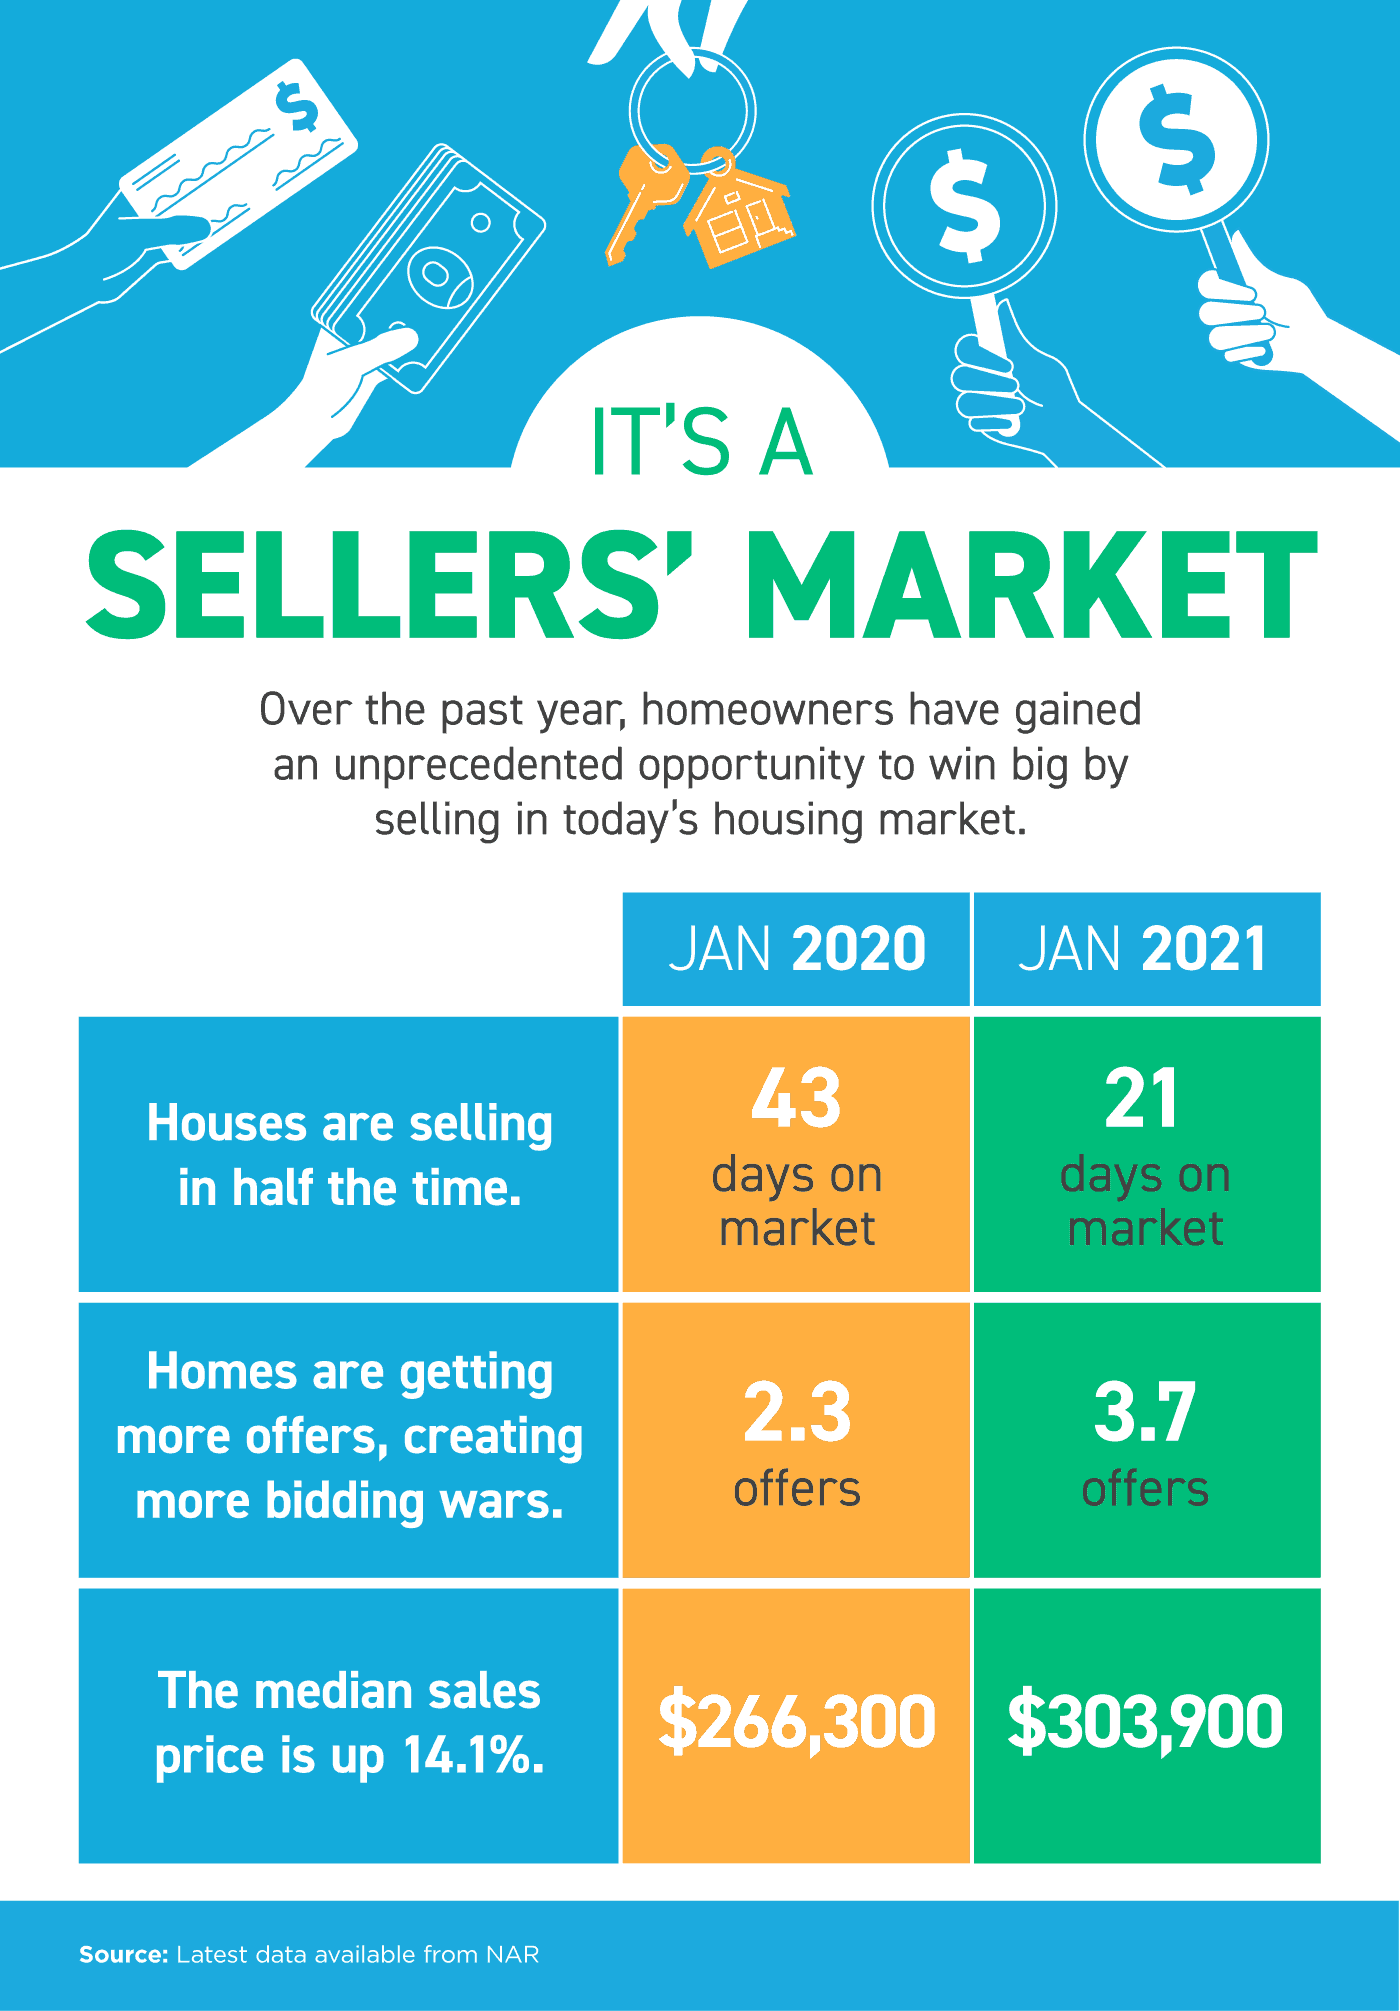 It's a Sellers' Market INFOGRAPHIC